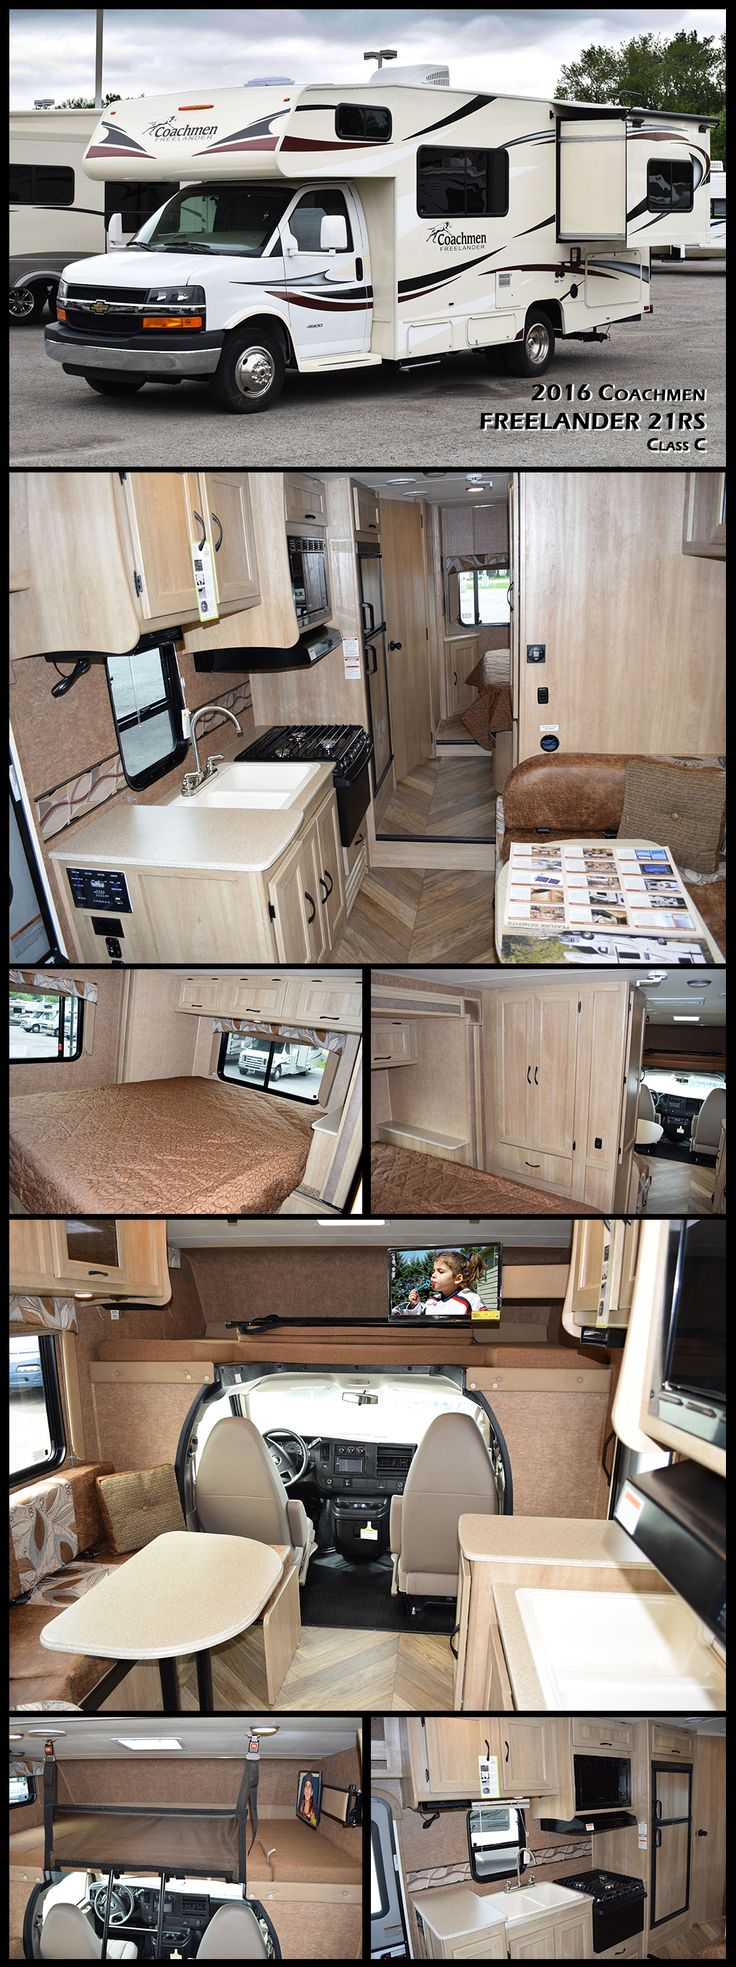 "This 2016 COACHMEN FREELANDER 21RS offers you all the ""Good Stuff"" novice RVers quickly appreciate and experienced RVers demand. The 21RS class C motor home is waiting to be your new home on wheels featuring a single slide out for added space inside, sleeping for six, and so much more!"